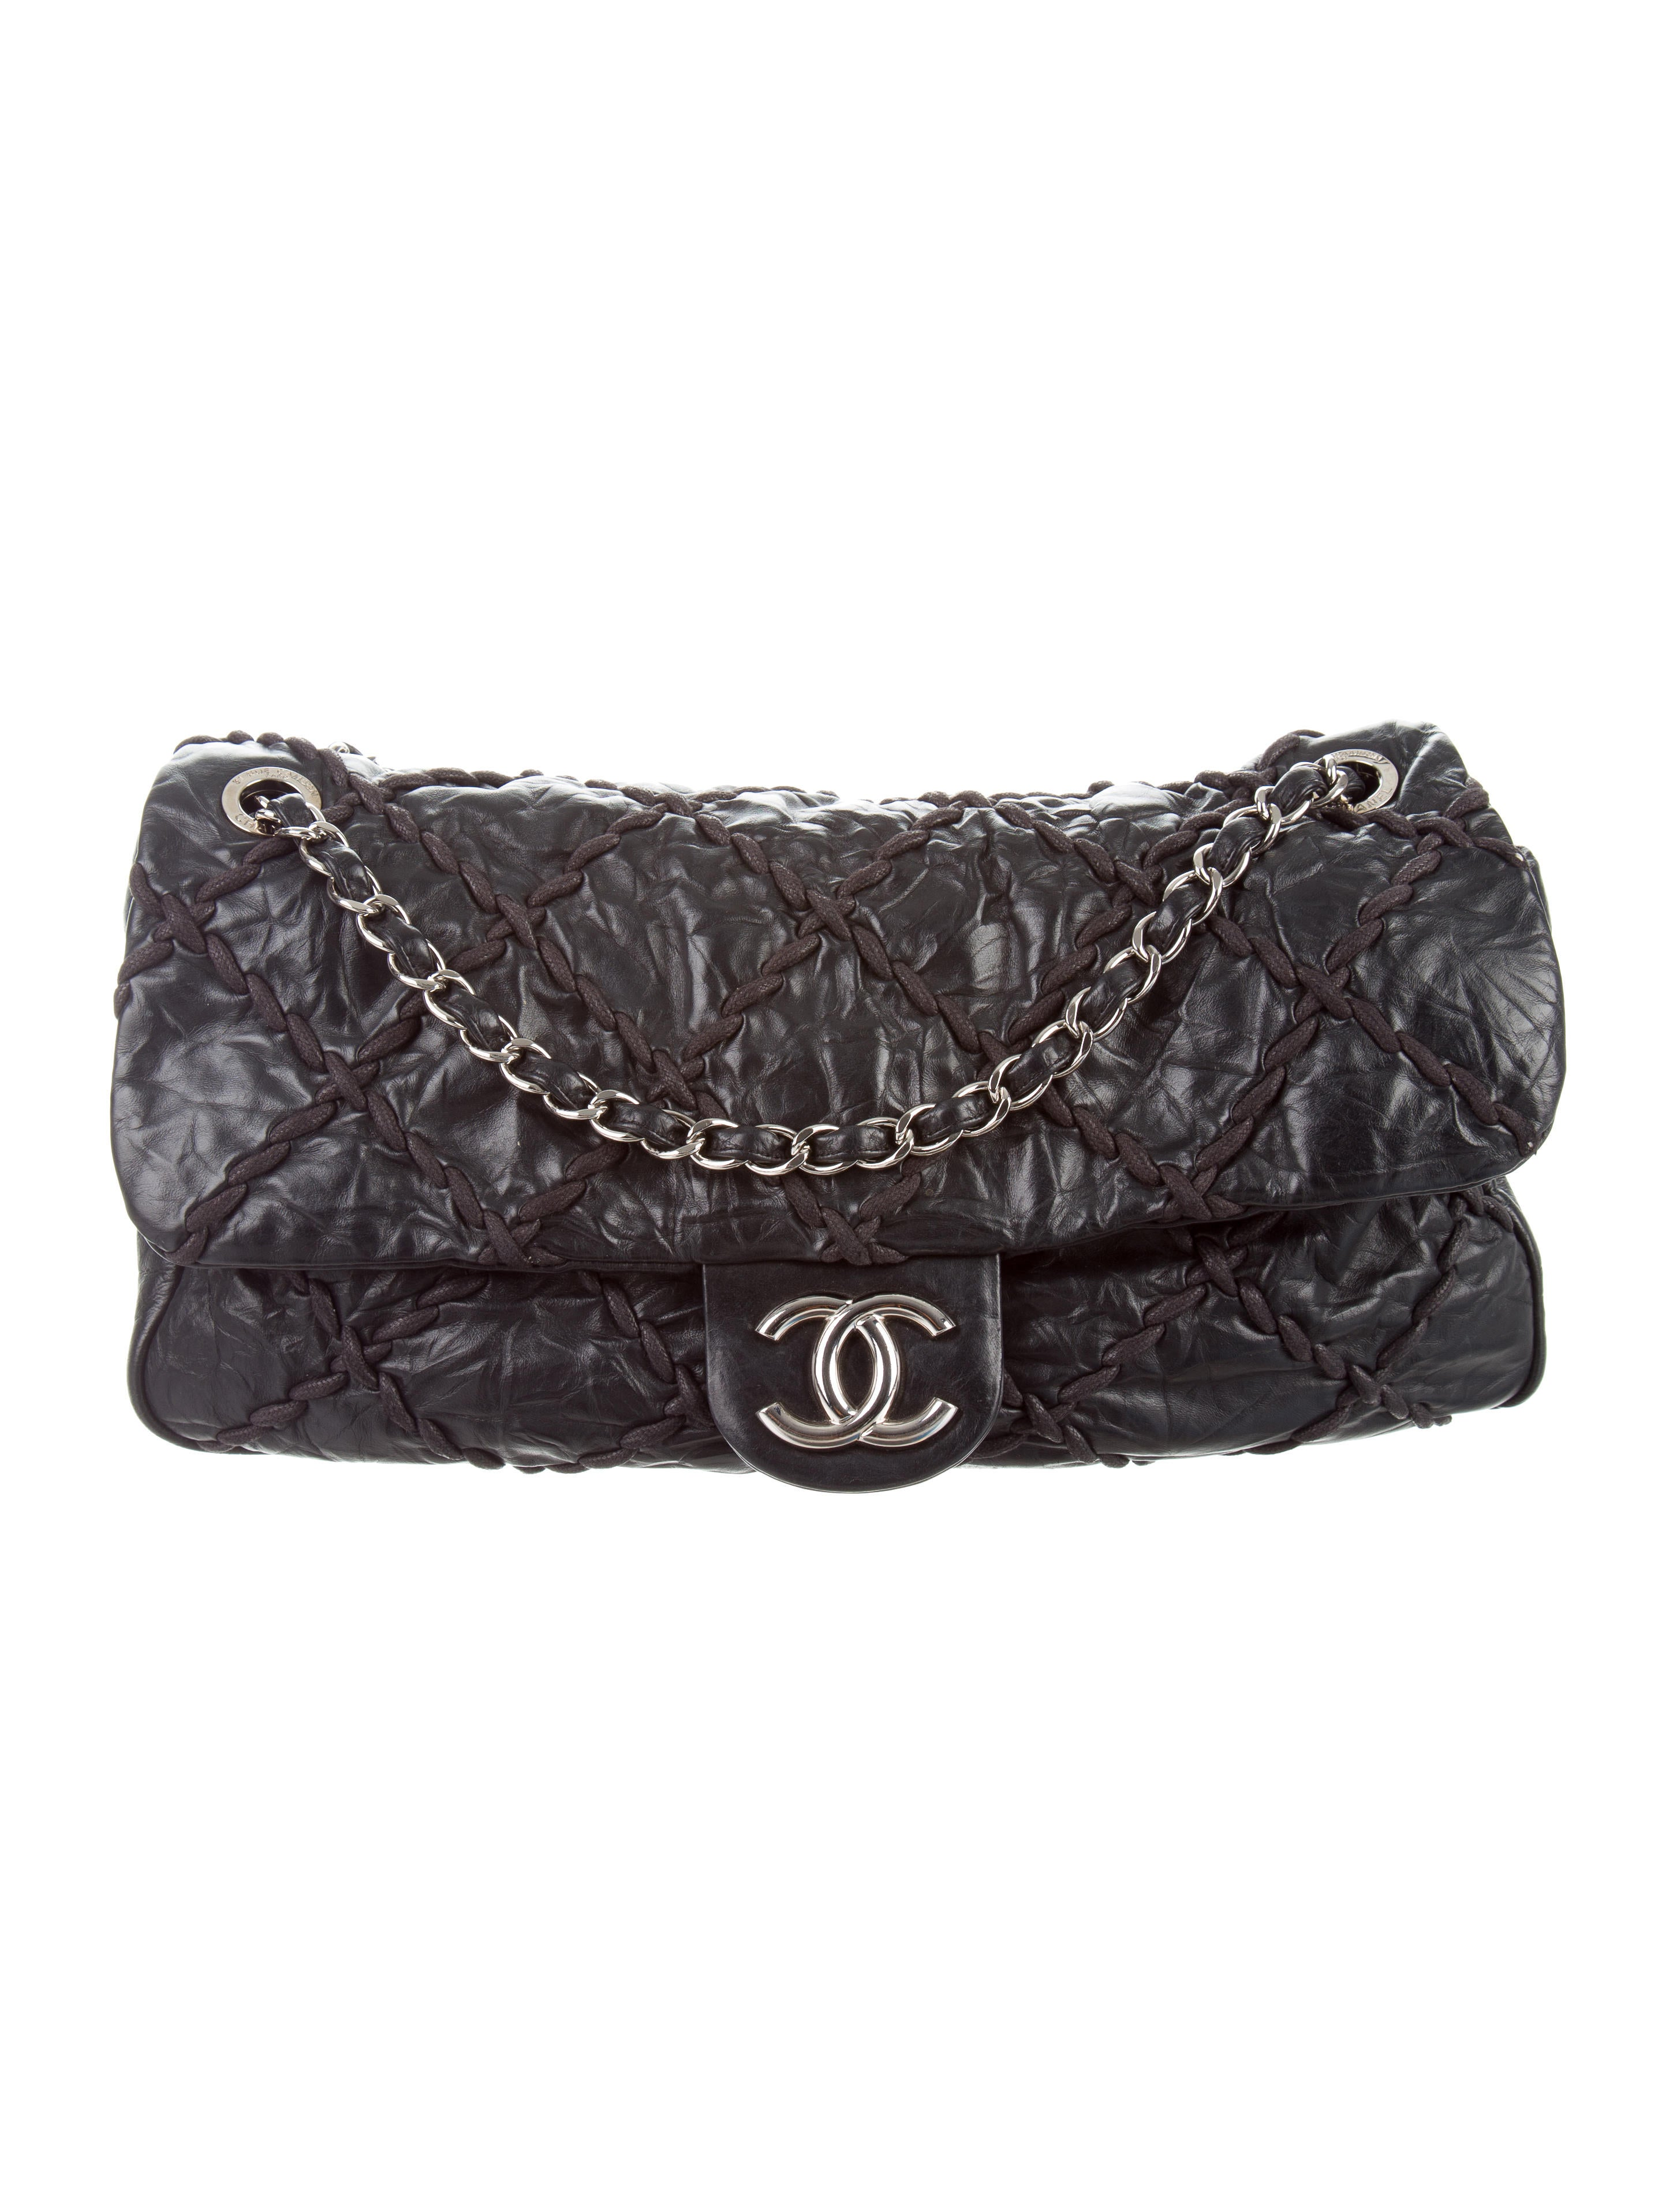 faebcaf19132 Chanel Purse With 8 Stitches | Stanford Center for Opportunity ...